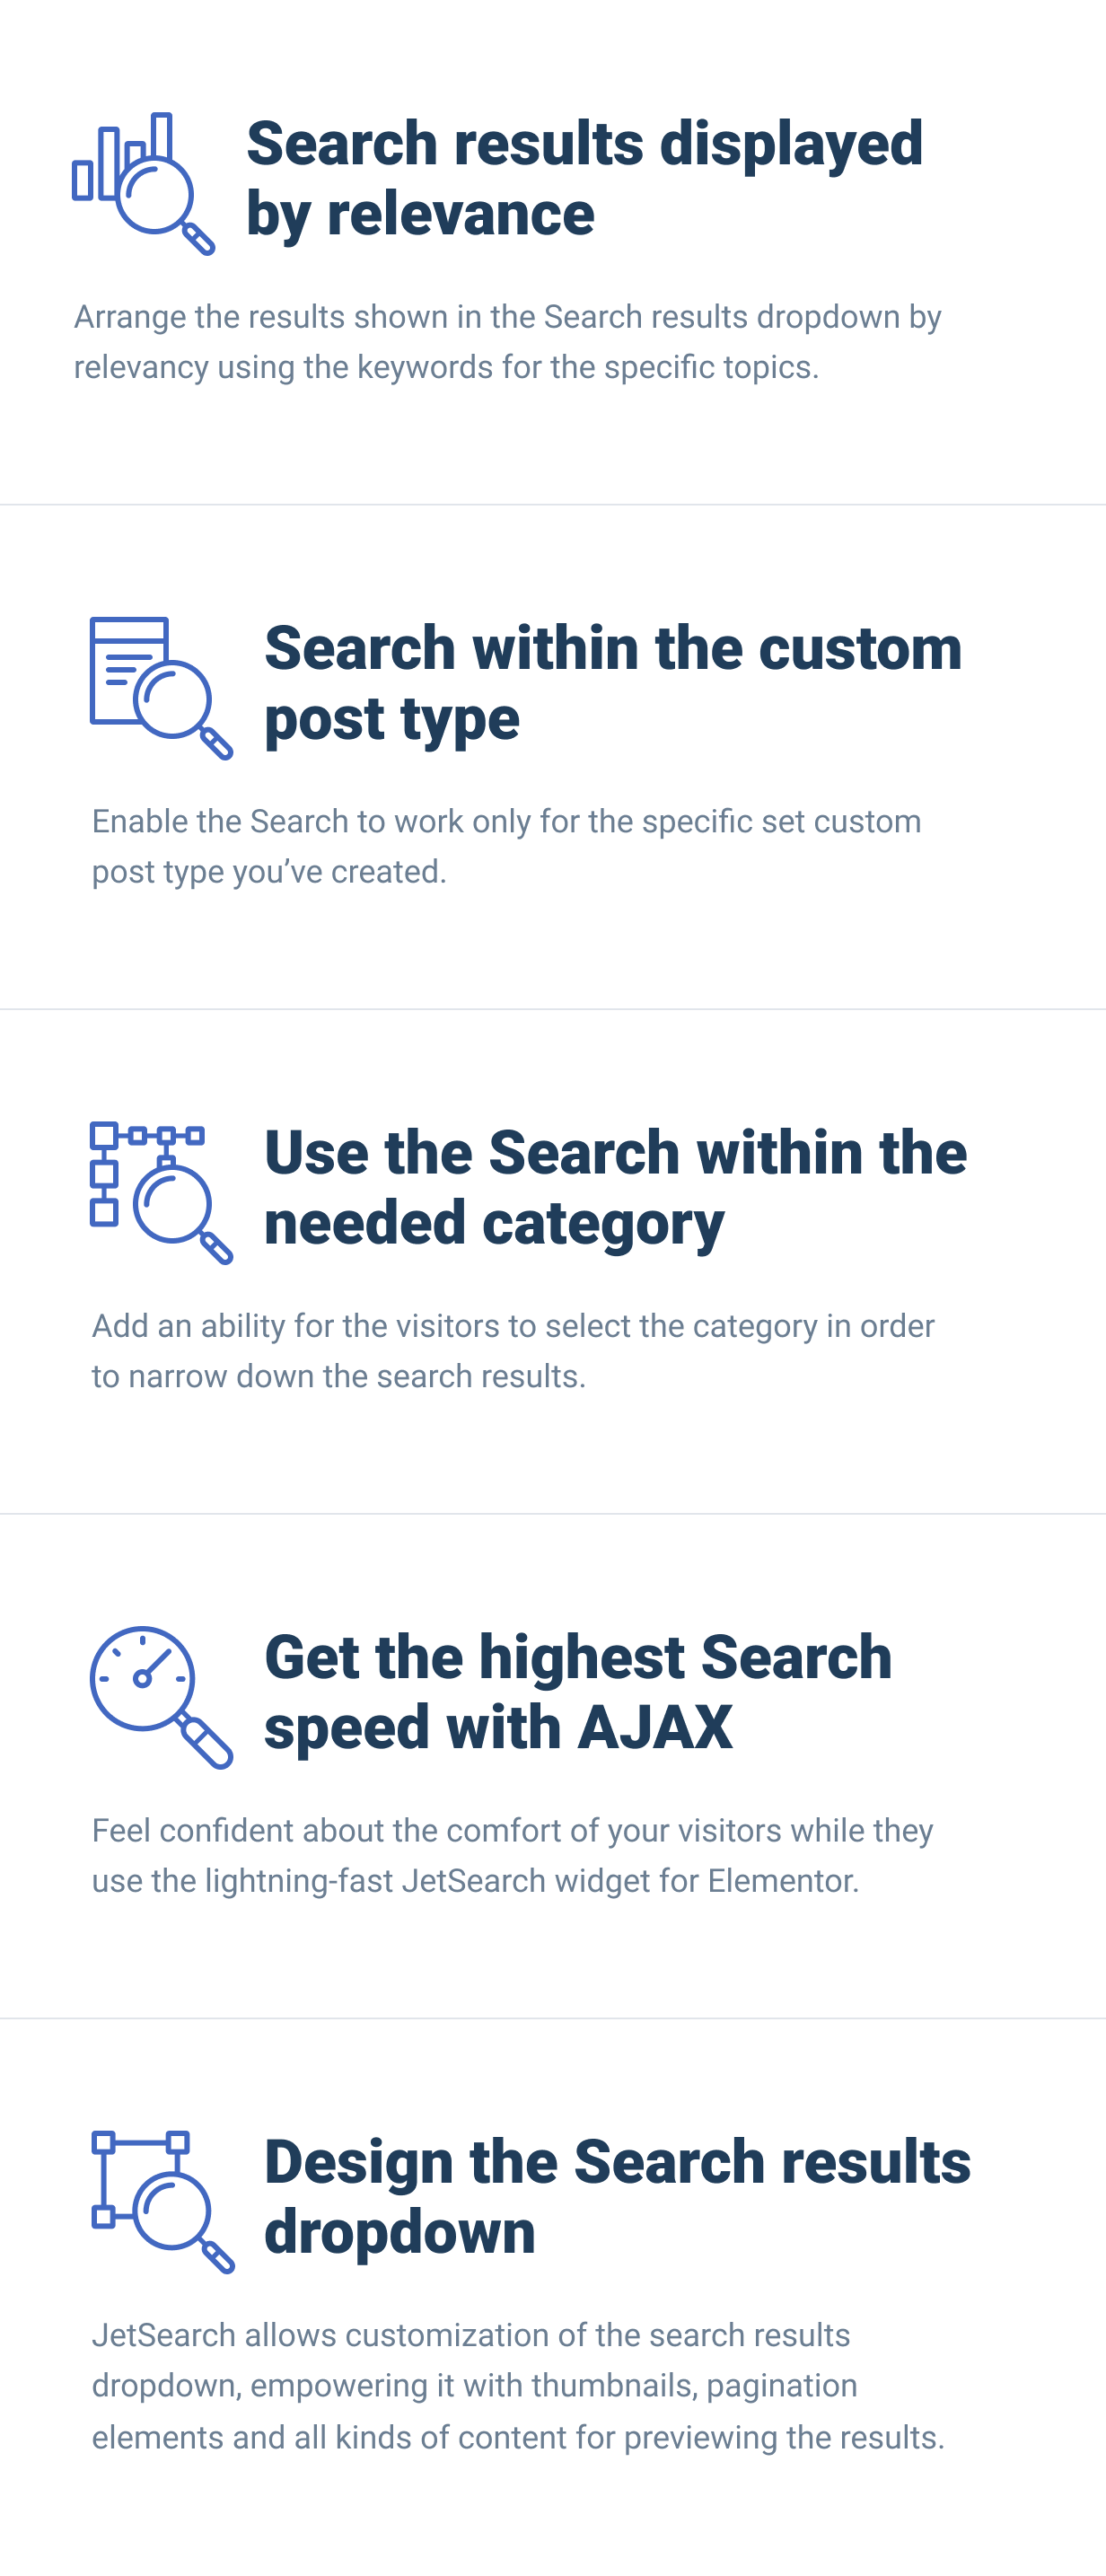 JetSearch — An ultra-fast AJAX Search widget for Elementor - 4